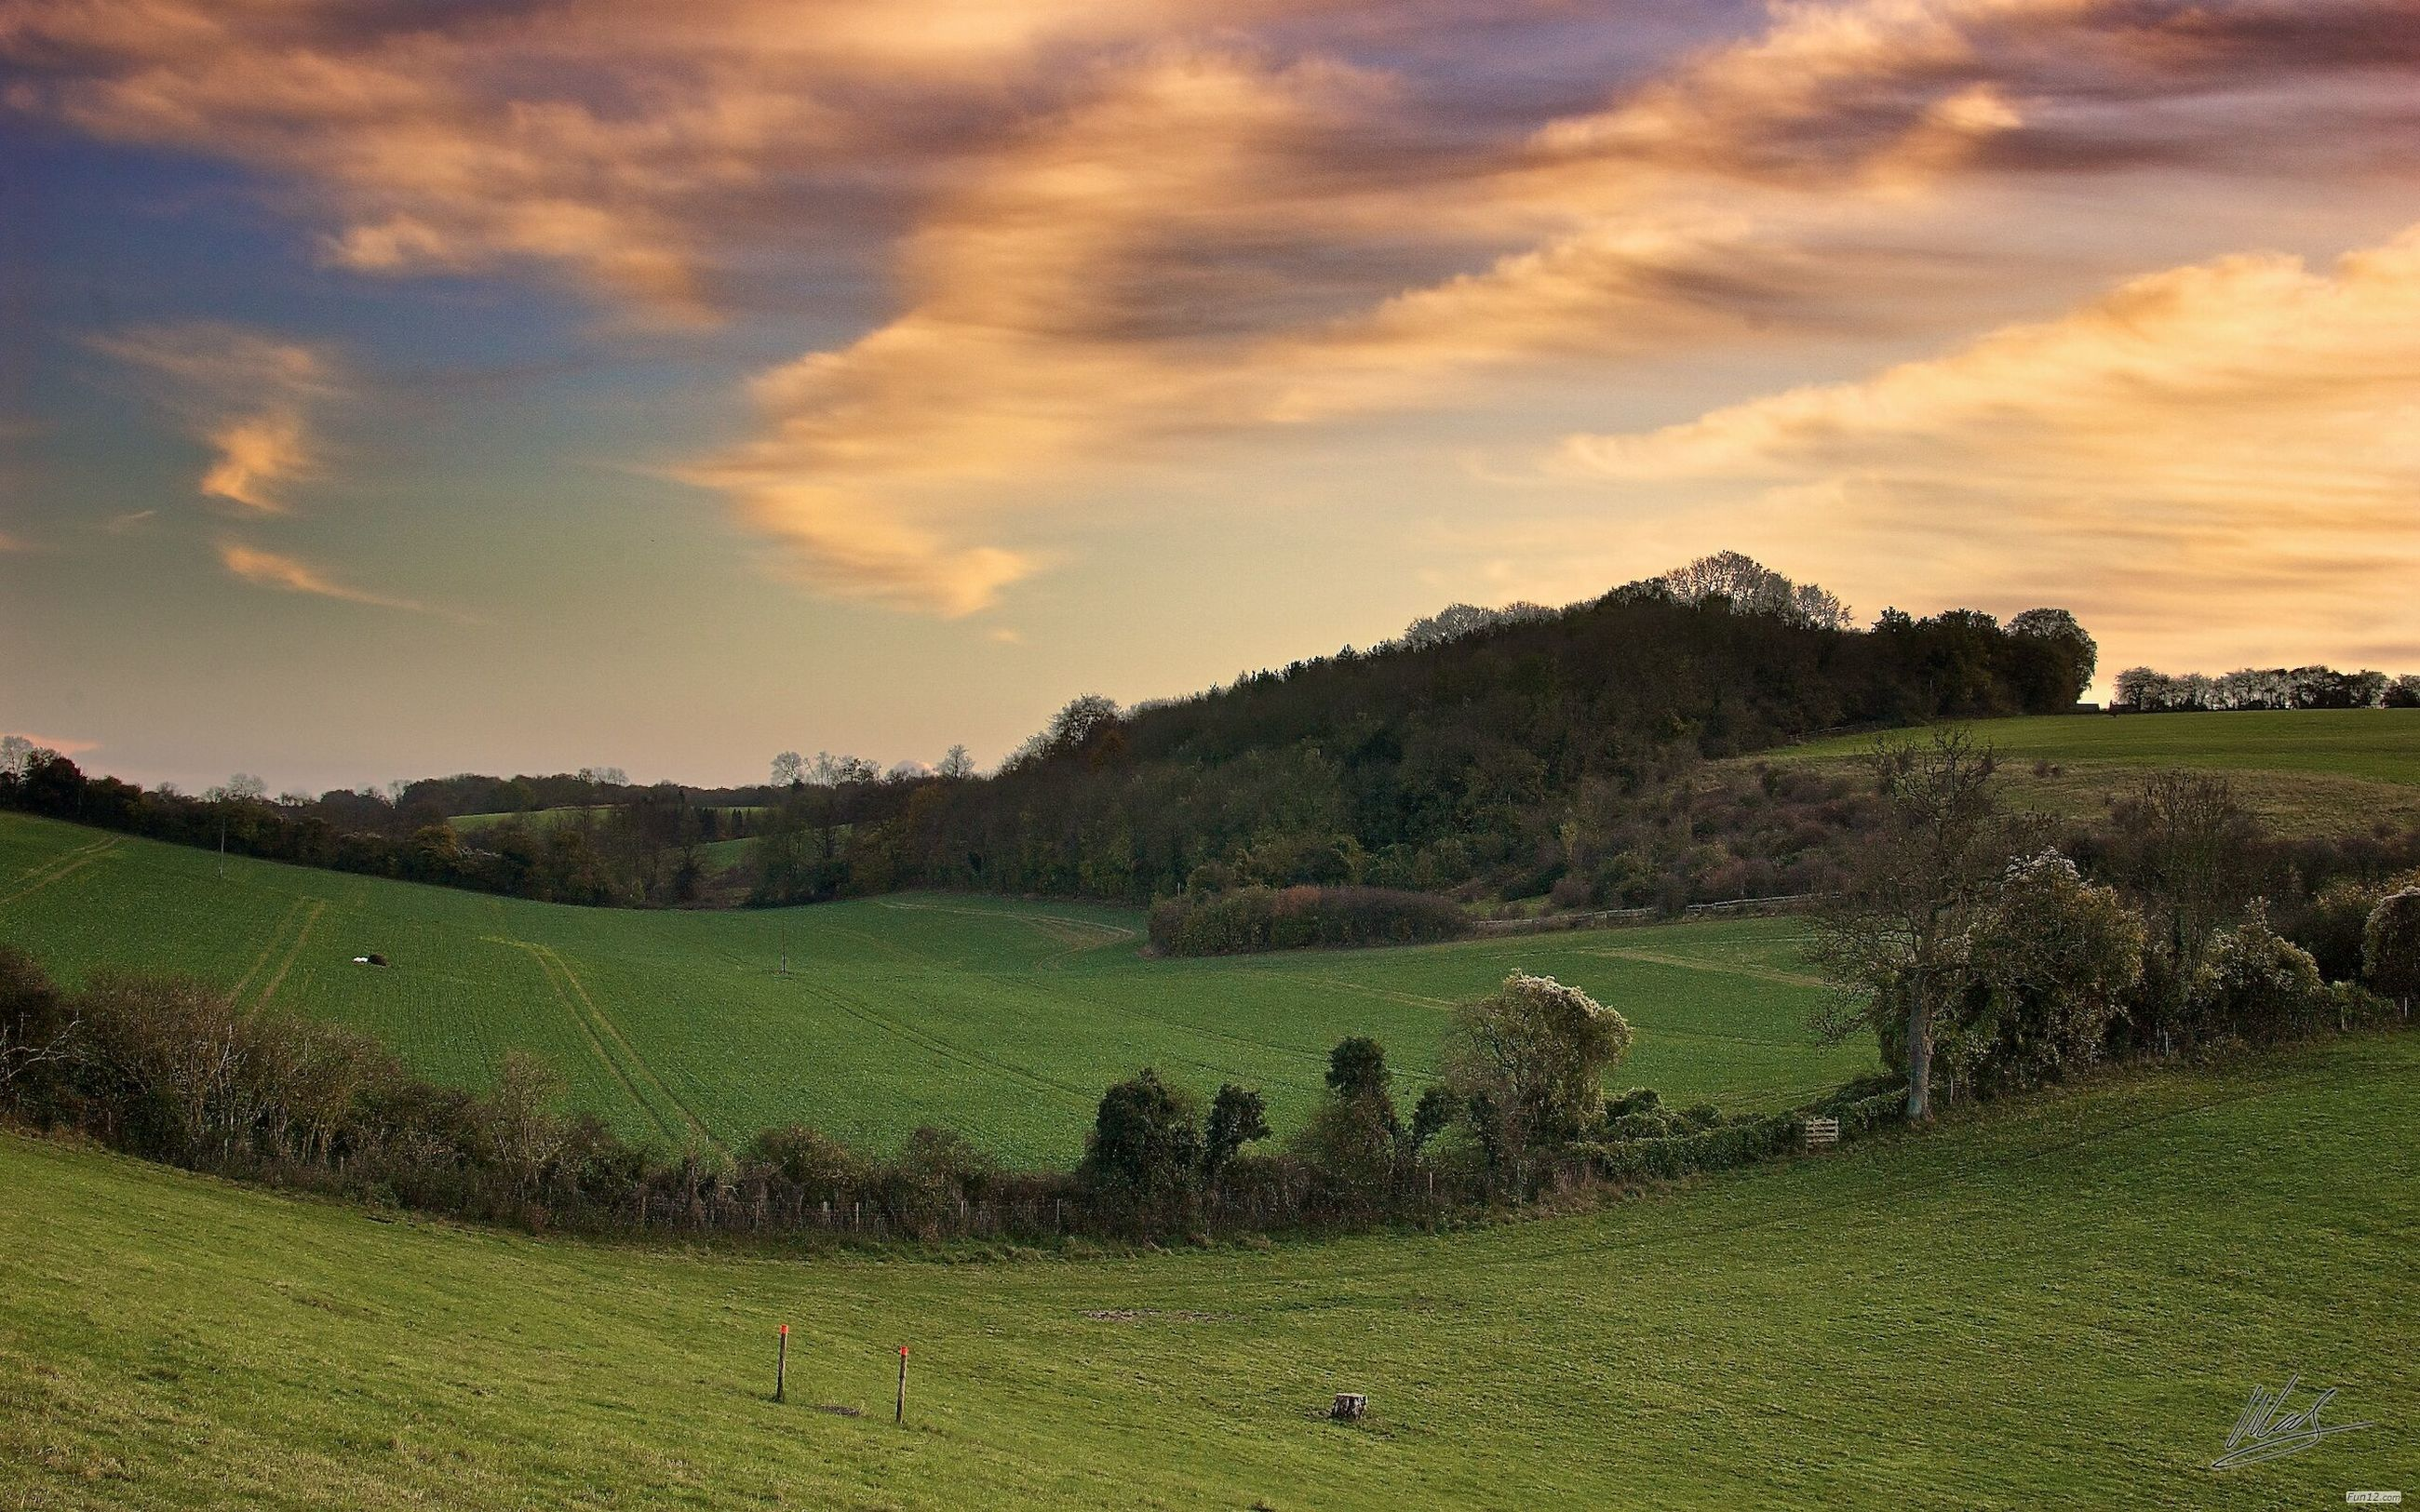 grass, sky, landscape, field, tranquil scene, tranquility, scenics, beauty in nature, cloud - sky, nature, green color, tree, rural scene, grassy, growth, agriculture, cloud, sunset, idyllic, cloudy